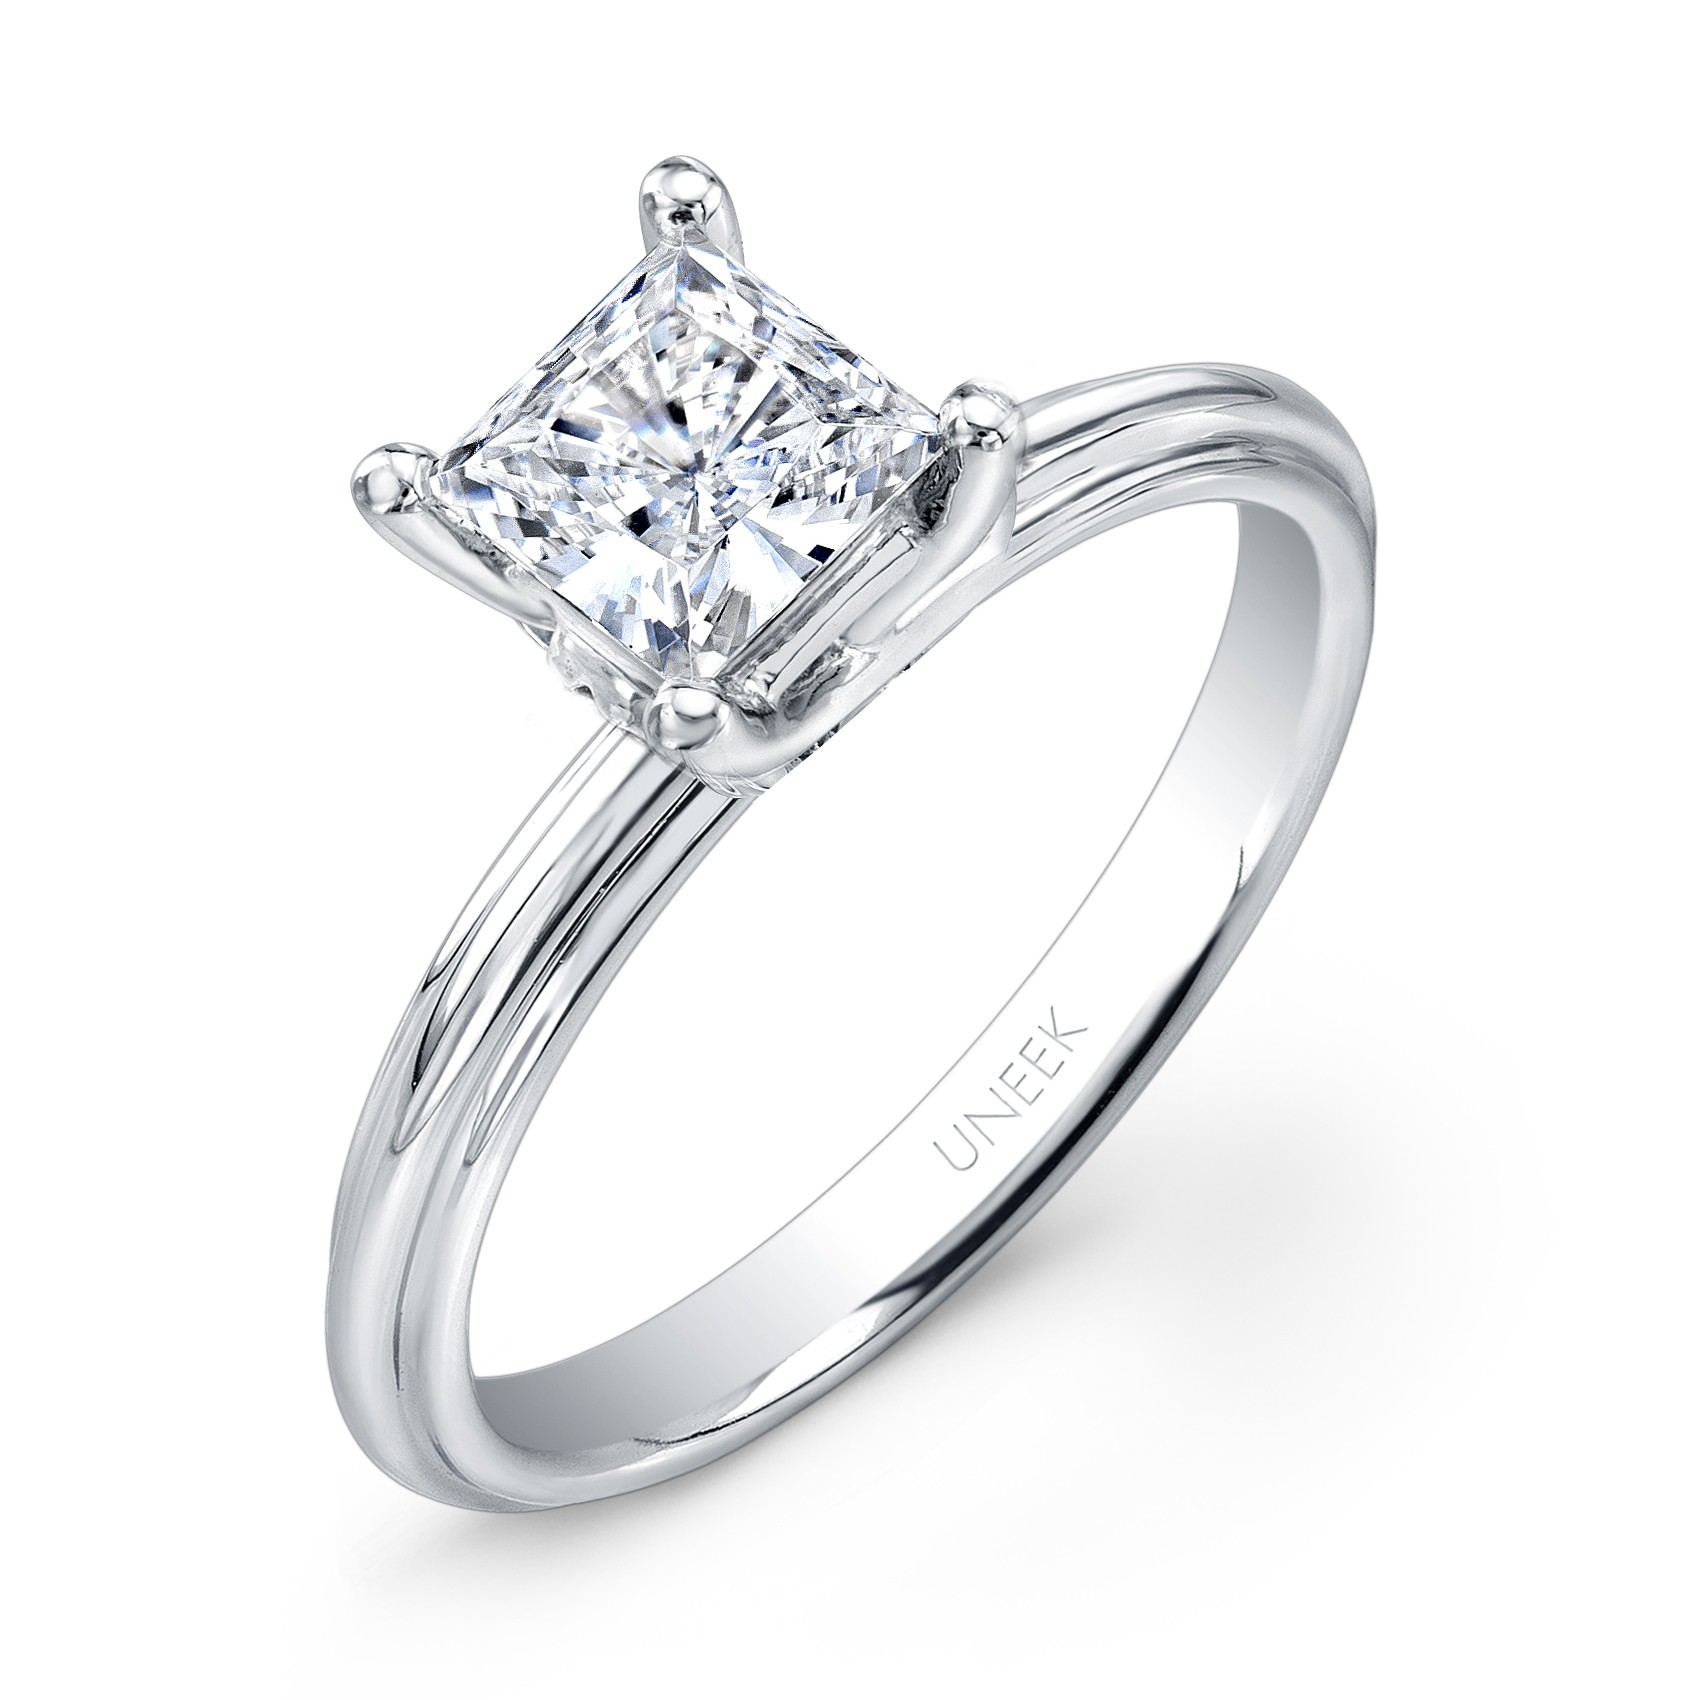 51909111139 Uneek Classic Princess-Cut Diamond Solitaire Engagement Ring with Sleek